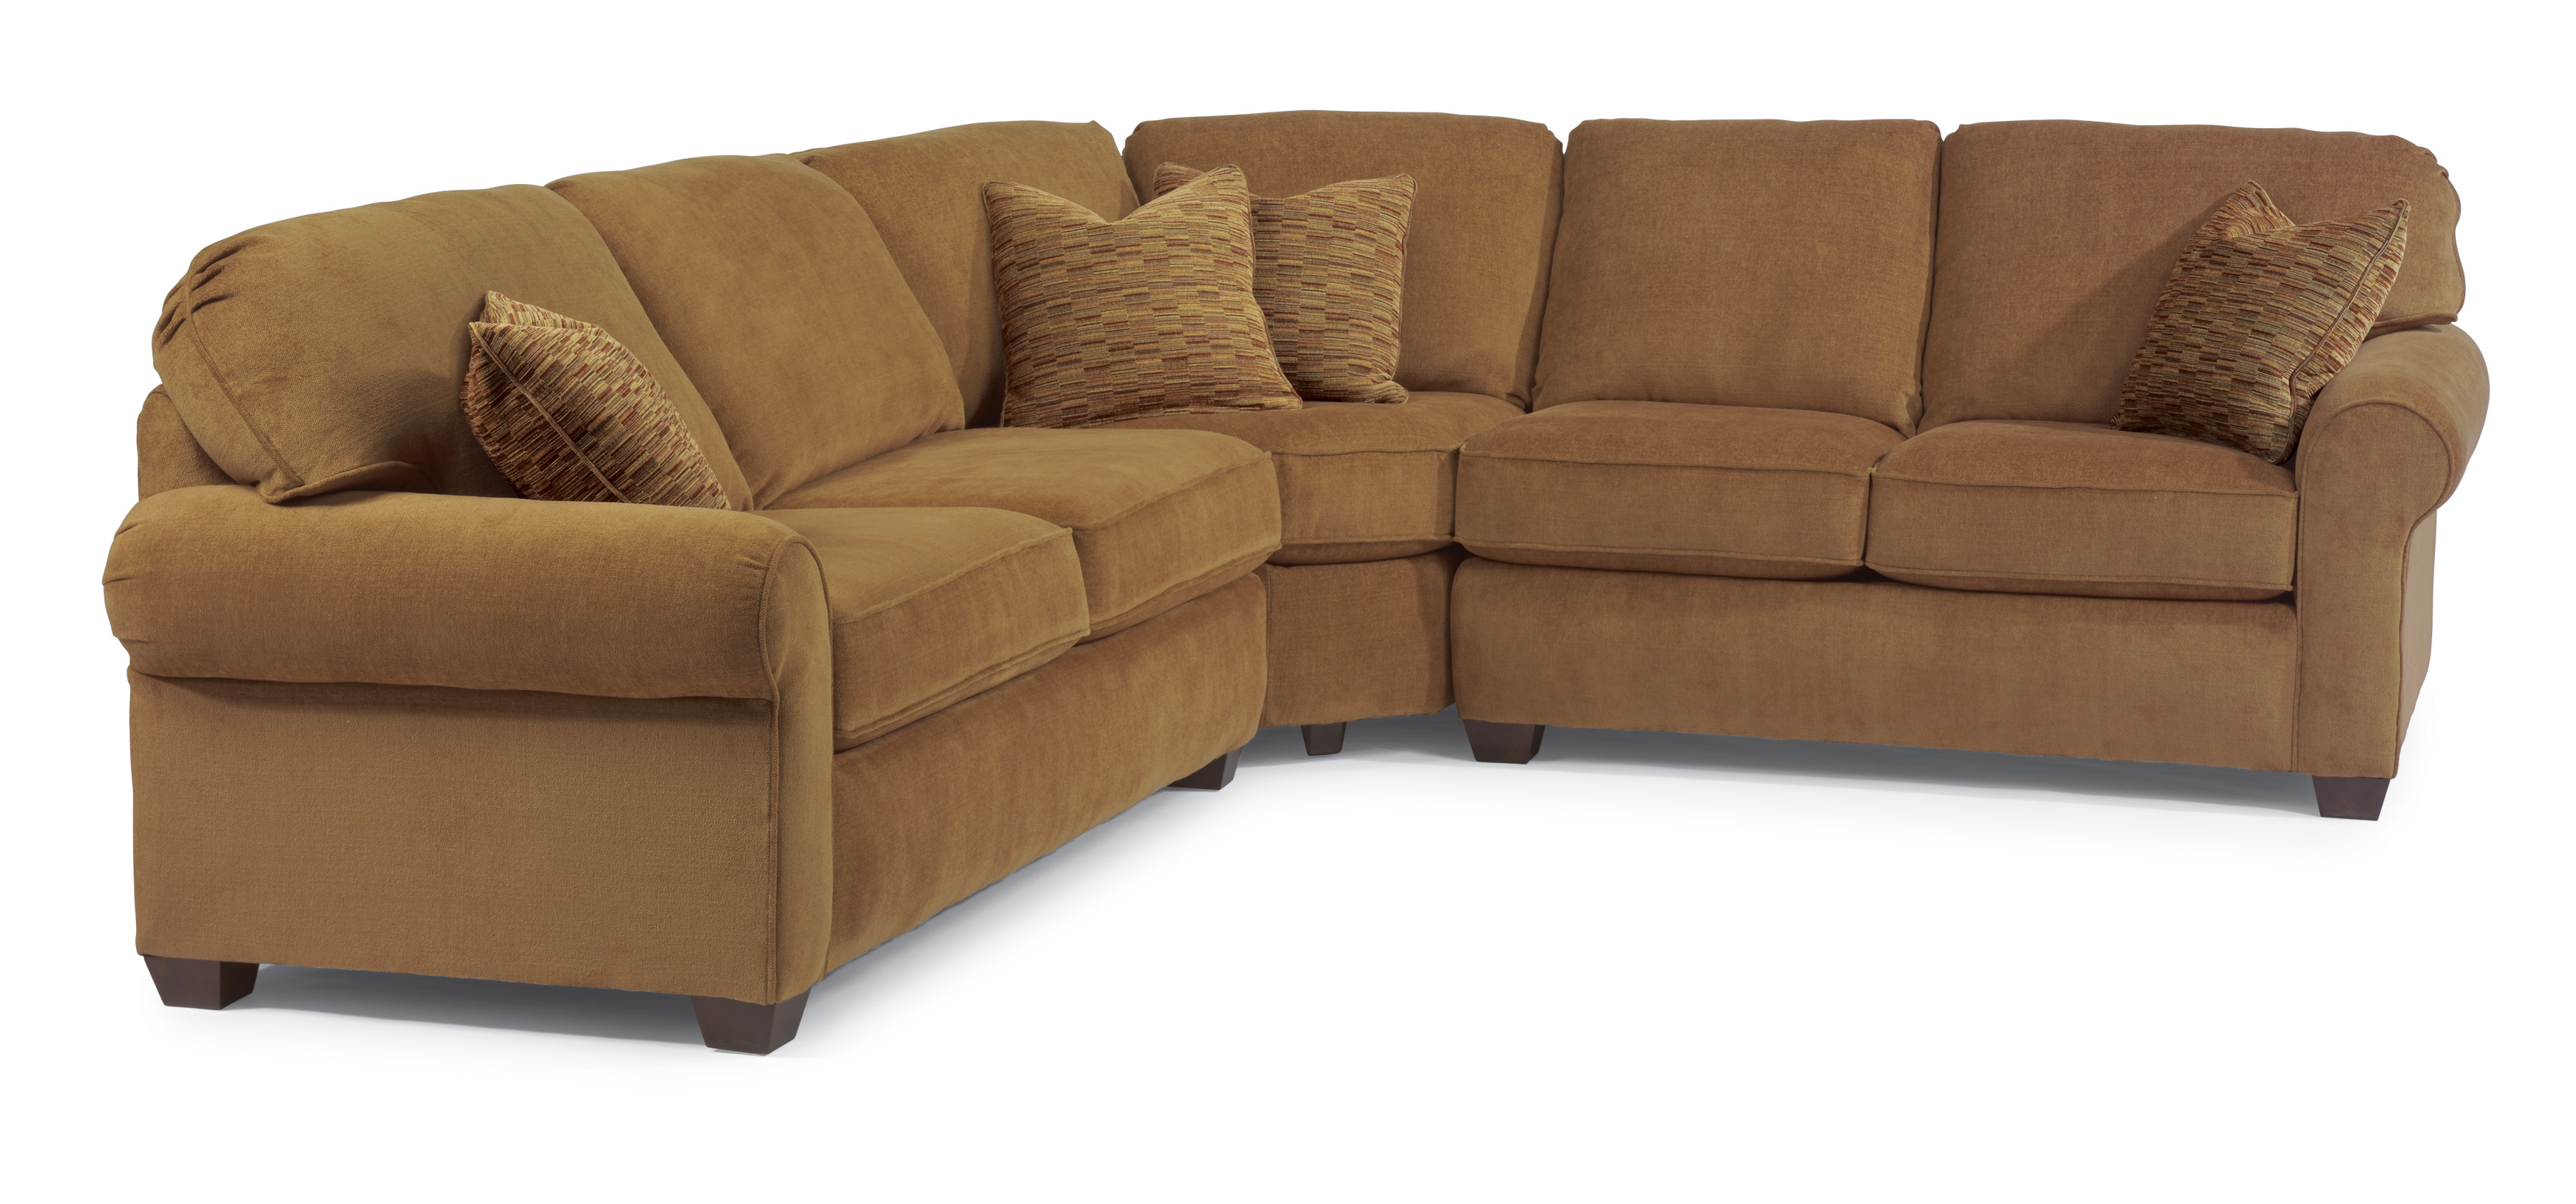 Flexsteel Thornton Sectional Jasens Fine Furniture  : S5535 45 23 28104 54 from jasensfinefurniture.com size 3600 x 1682 jpeg 1012kB